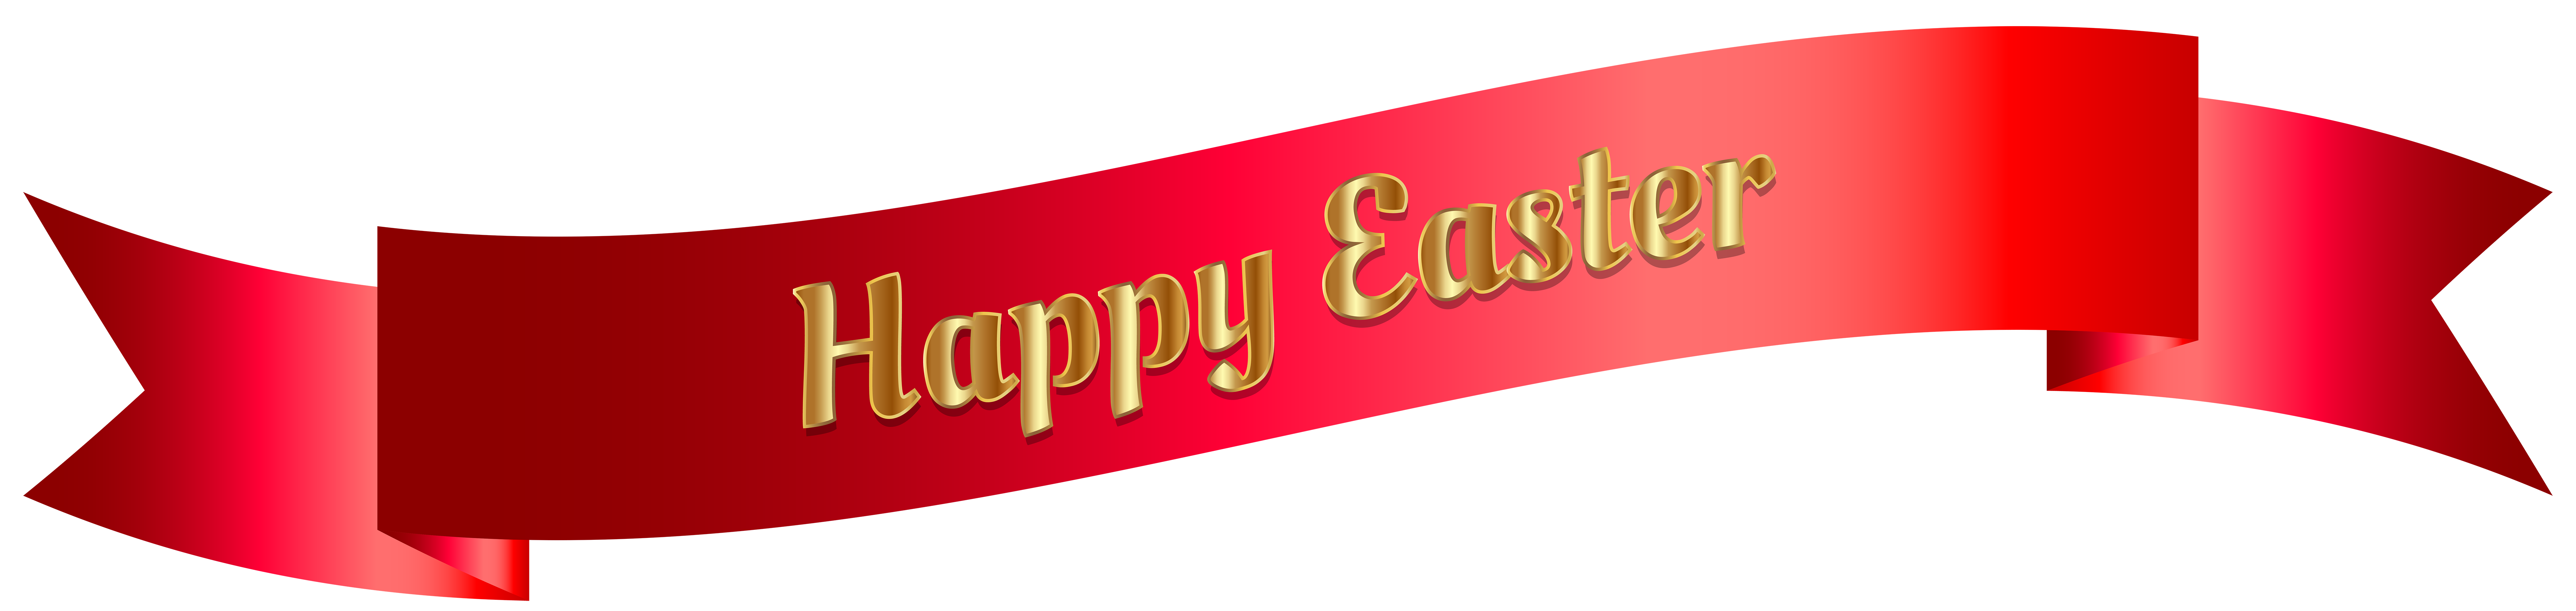 clip black and white stock Red happy easter png. Advertising clipart banner.